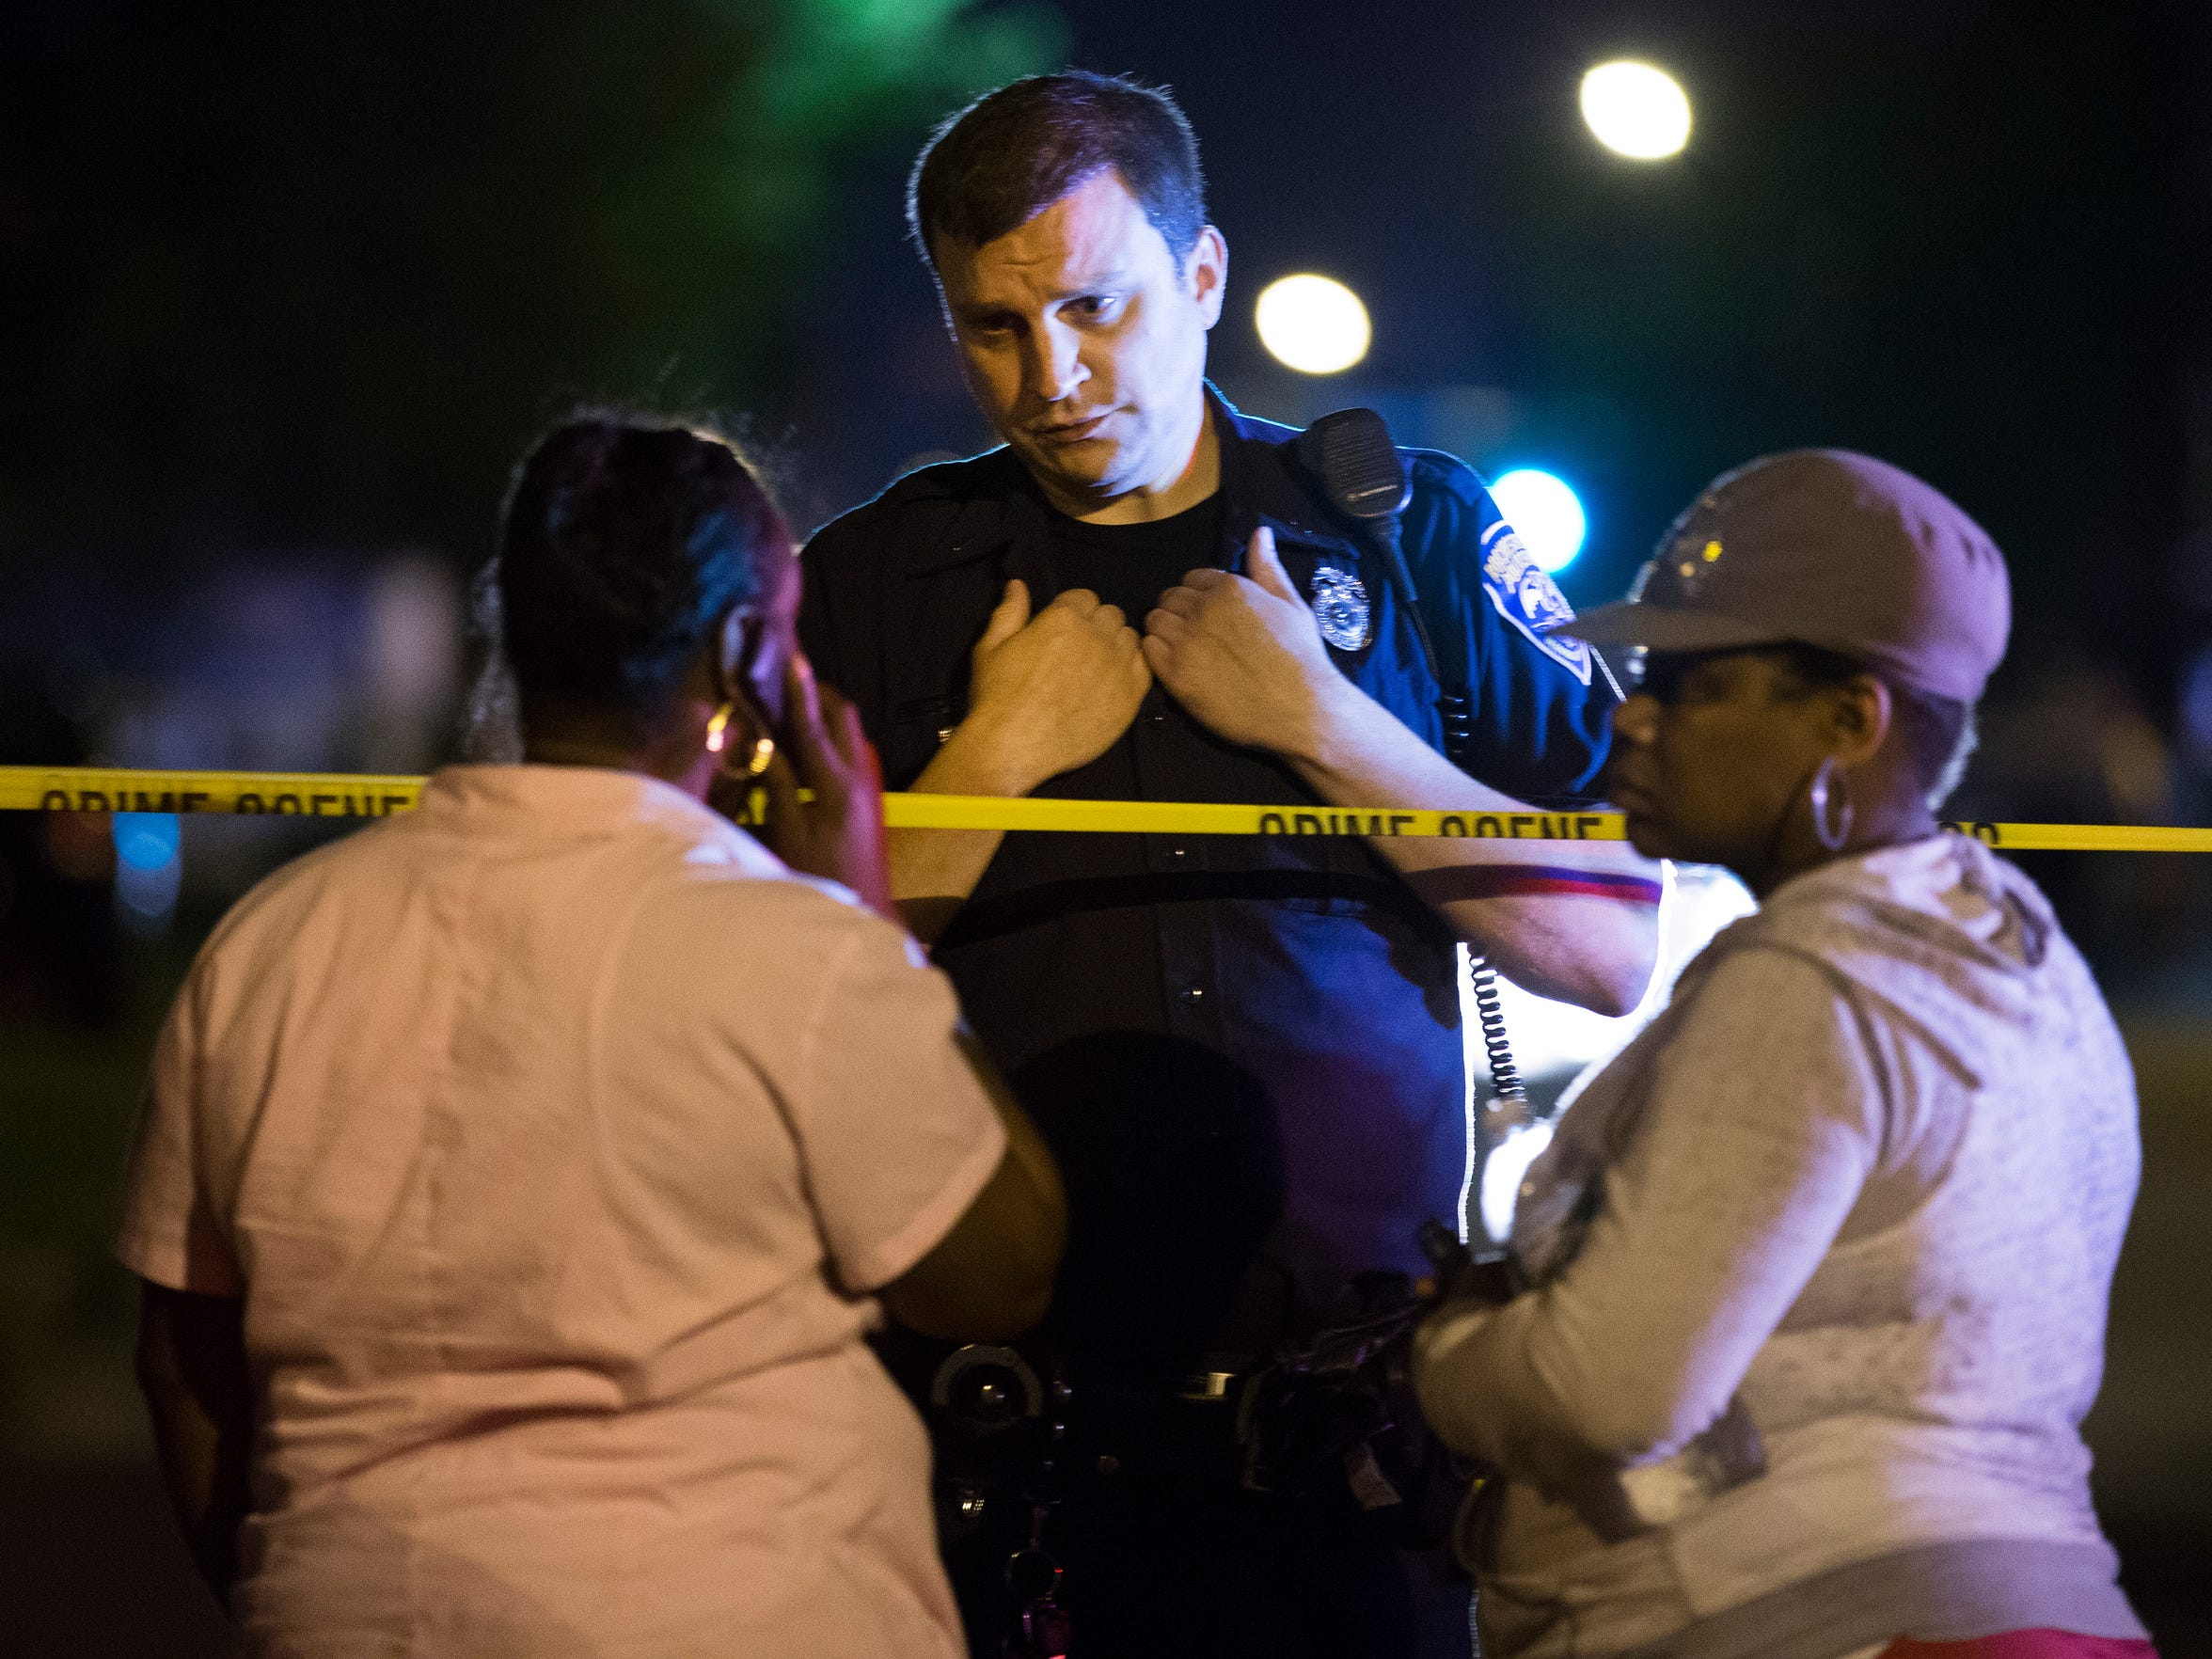 A Rochester Police Officer speaks to bystanders at the scene on Genesee Street near the Boys & Girls Club.